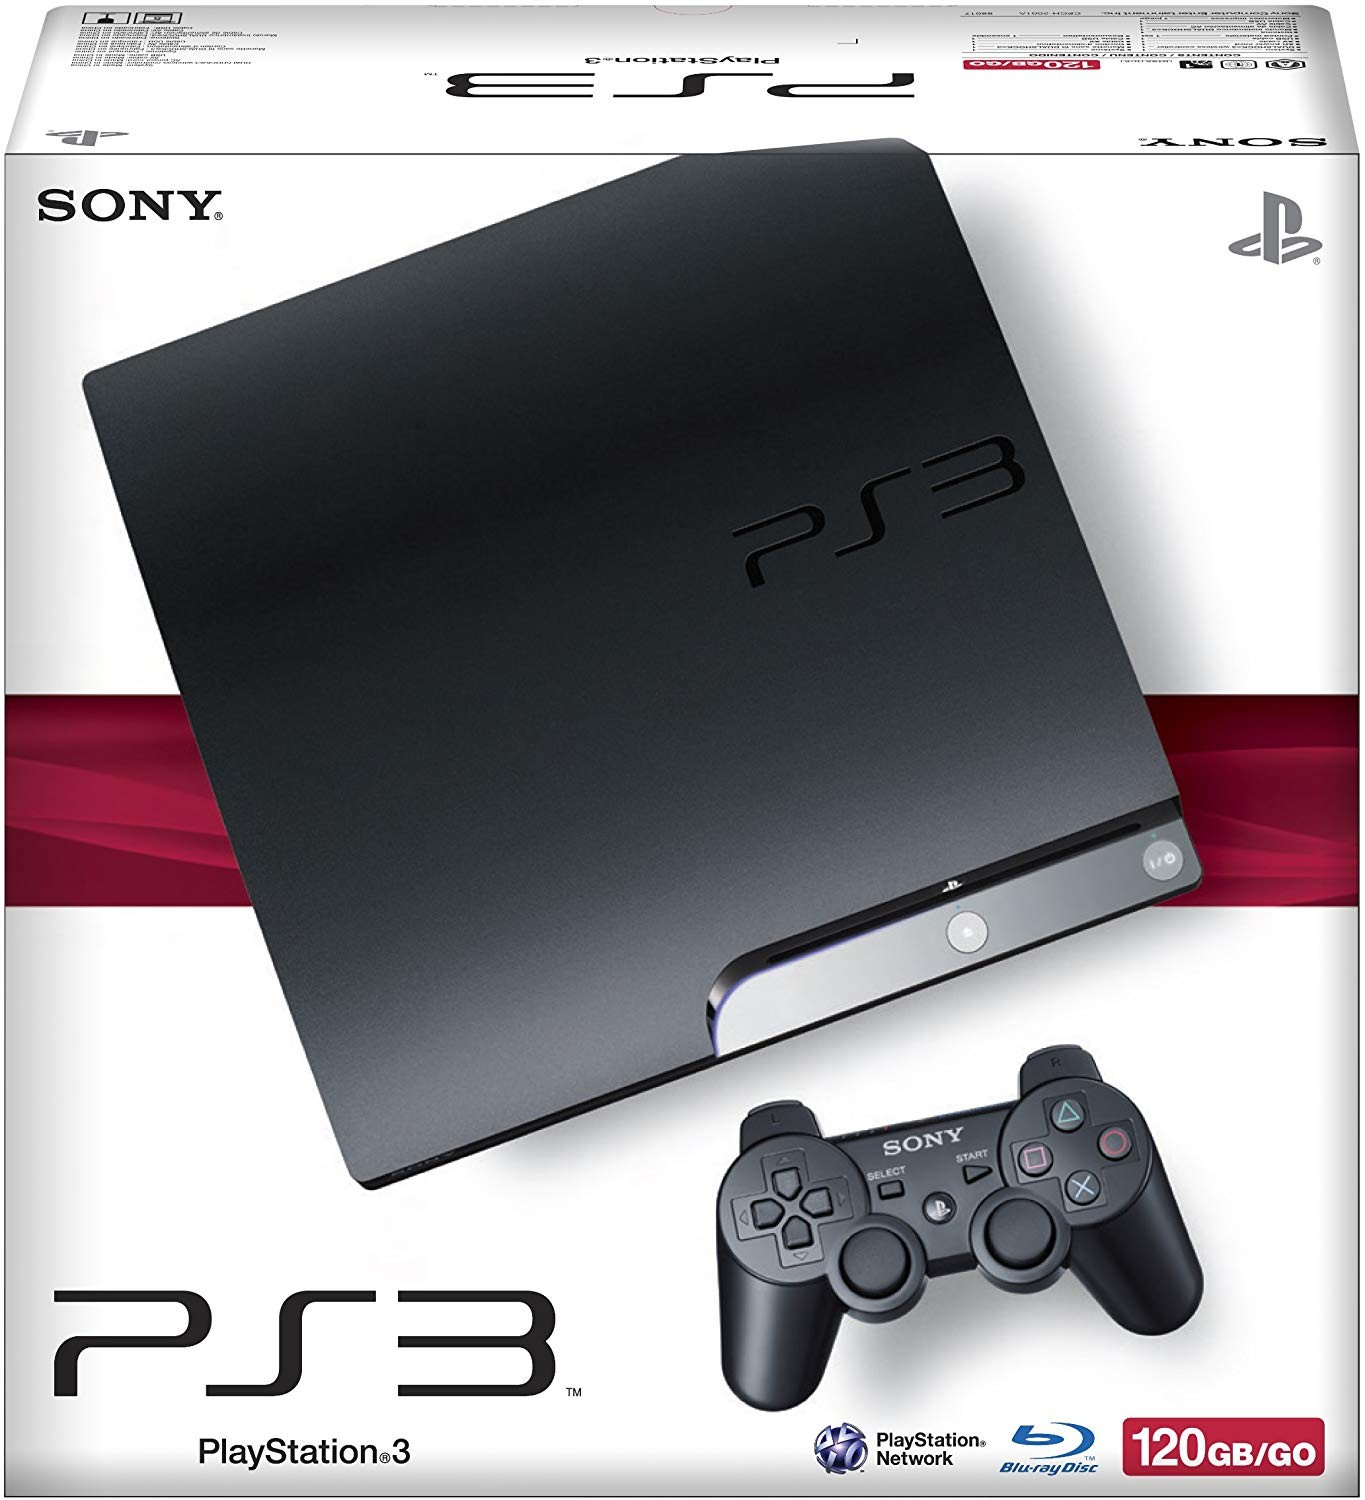 Sony PlayStation 3 Slim 120GB | PS3 Slim б/в